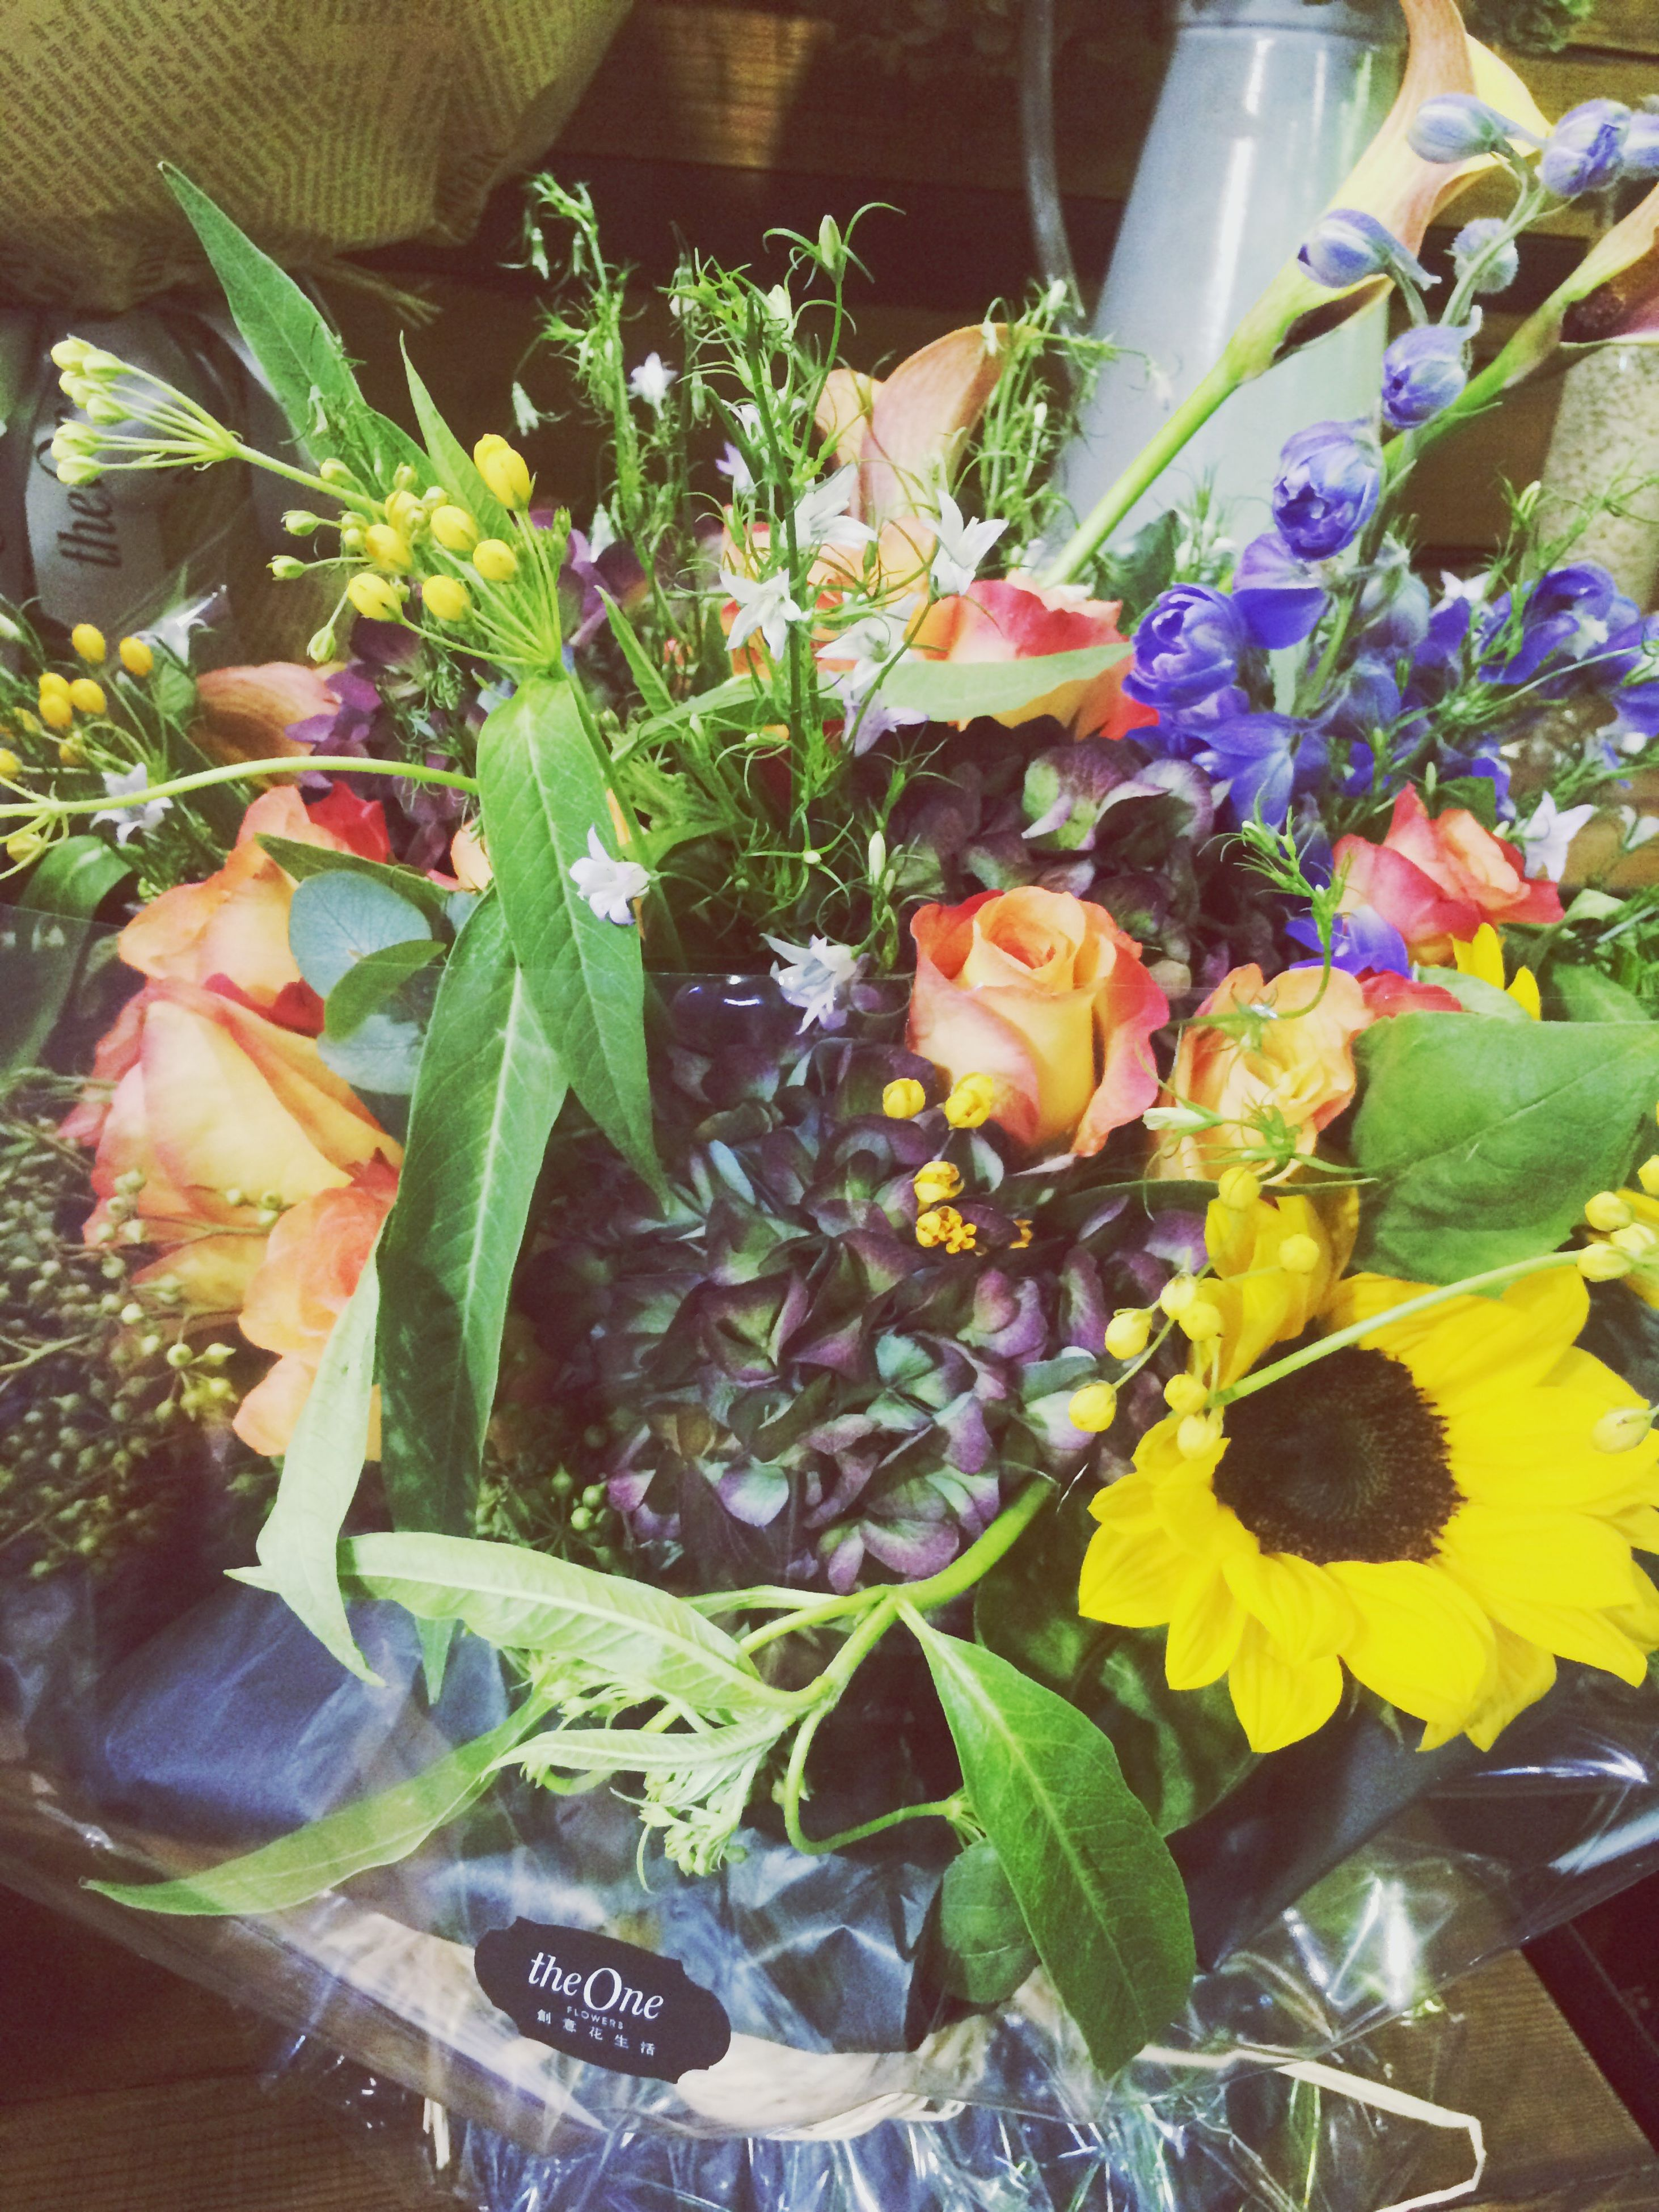 freshness, indoors, flower, variation, high angle view, for sale, large group of objects, abundance, choice, fragility, arrangement, potted plant, plant, still life, retail, multi colored, table, petal, vase, no people